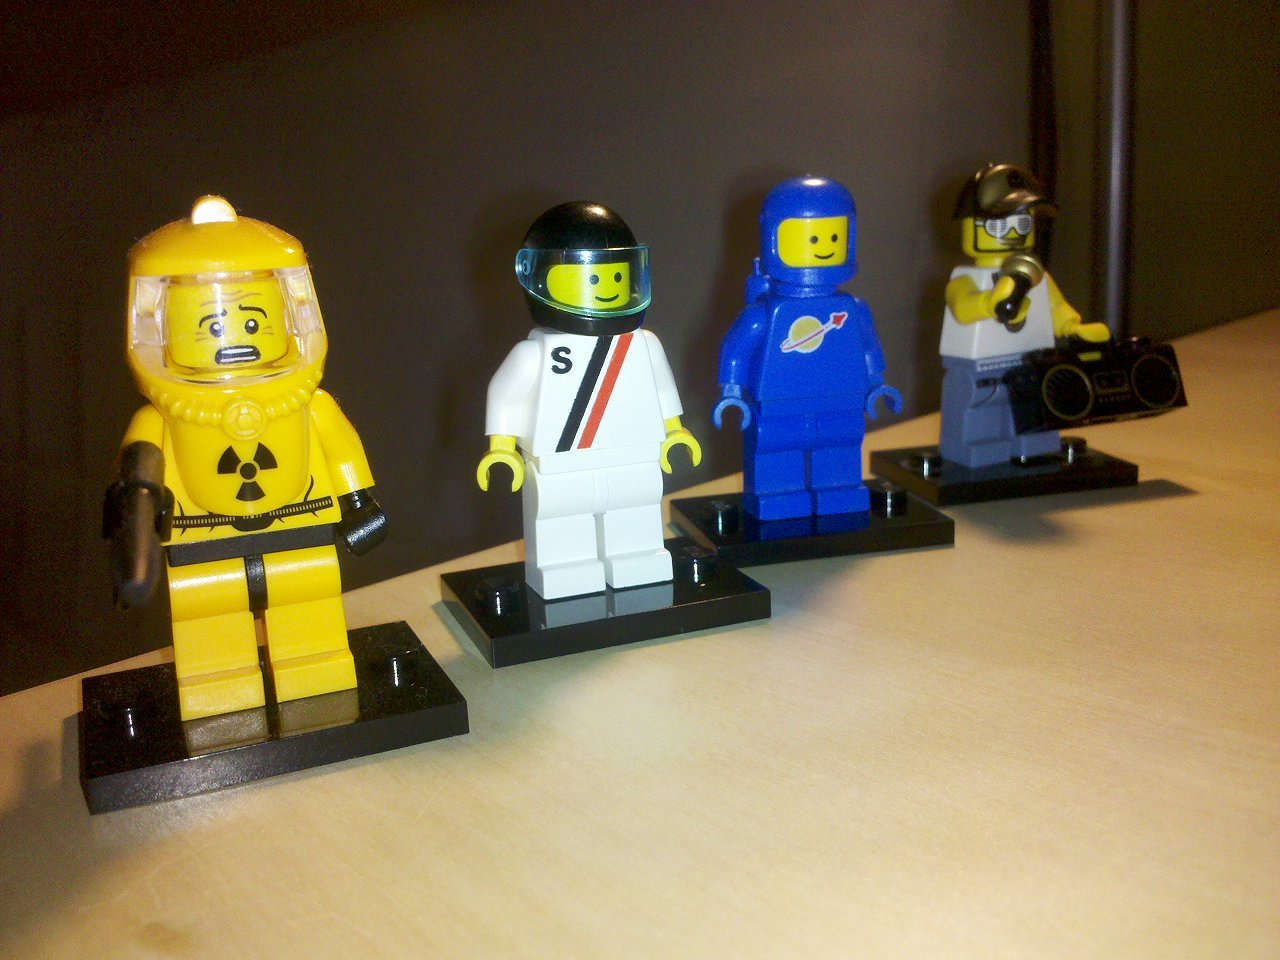 mattsbrickgallery:  My minifig collection, part 1. Submitted by drkotasz: